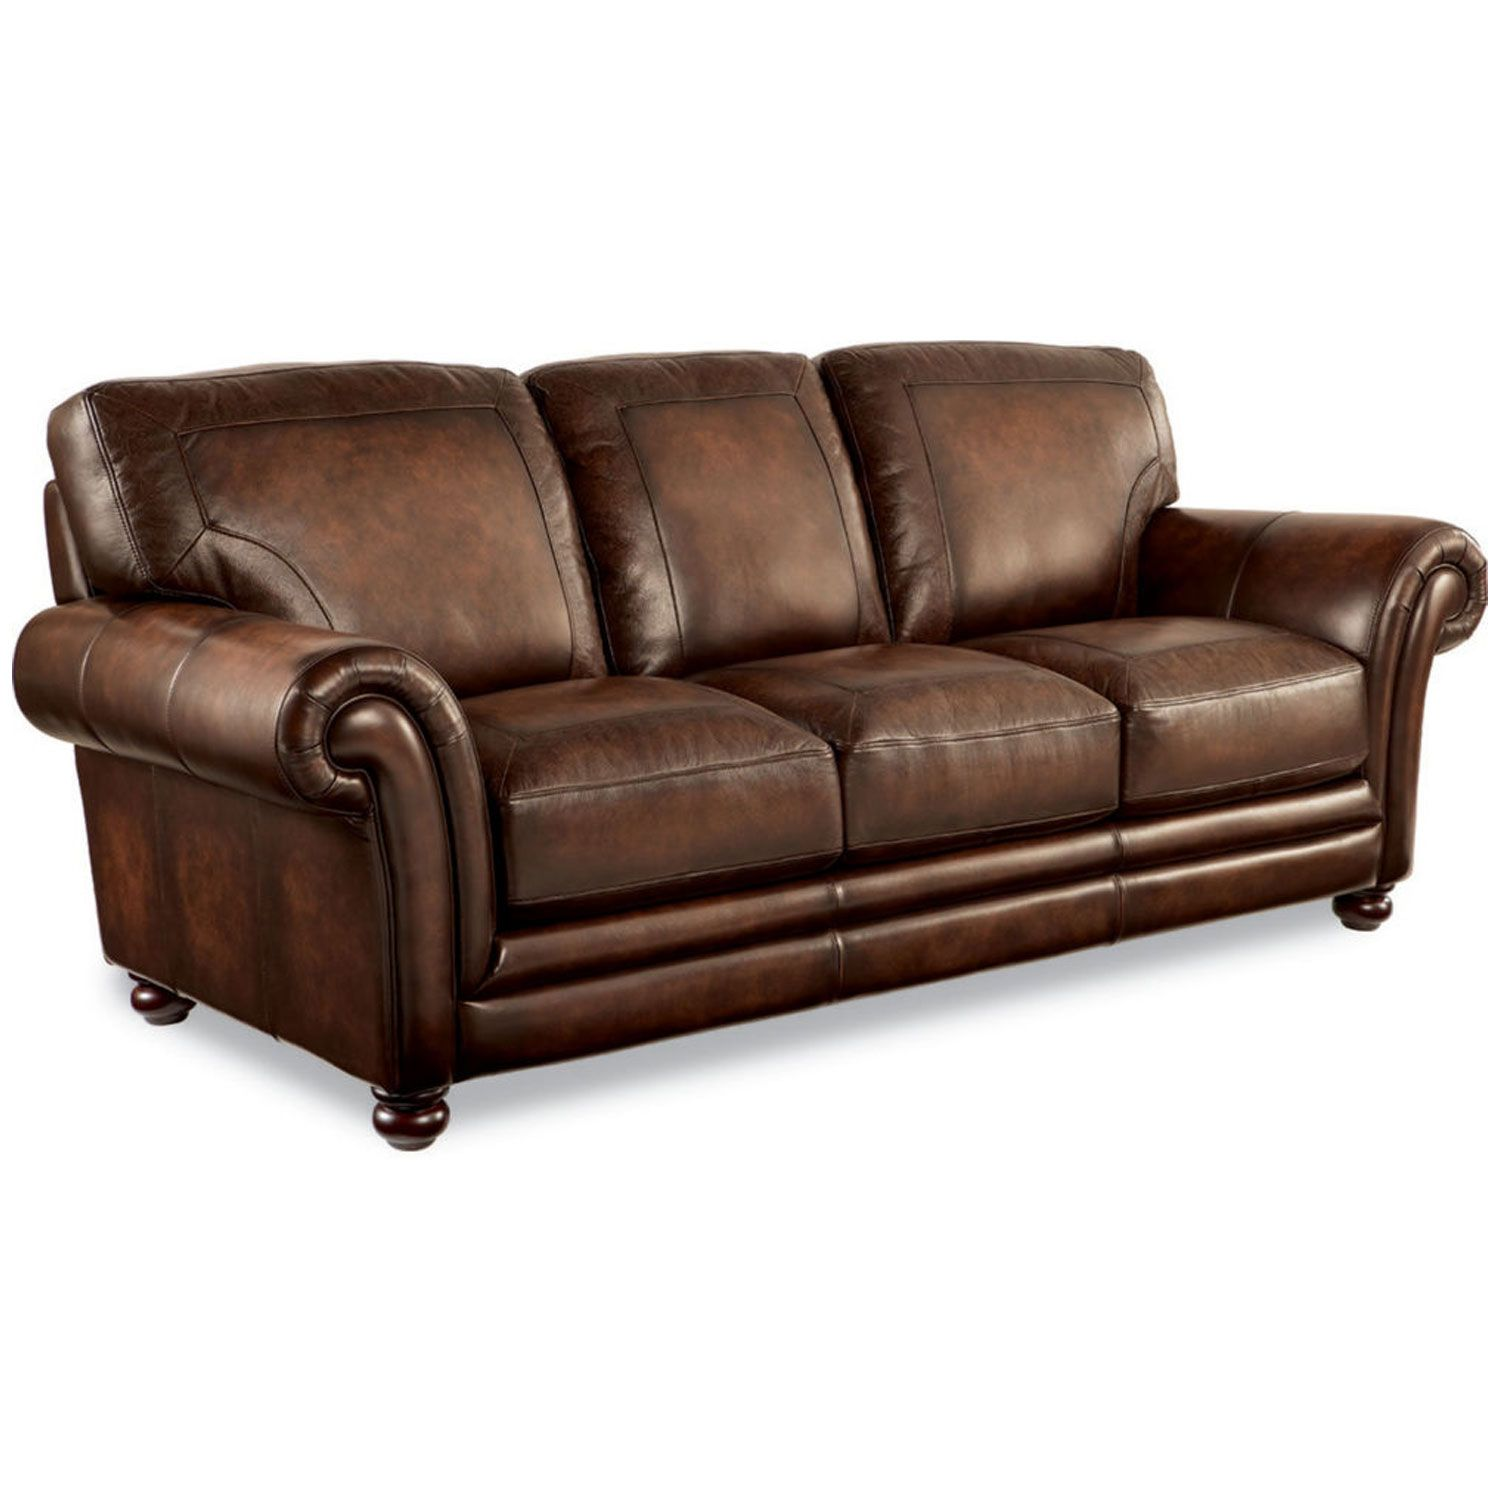 Furniture Lazyboy Sofas With The Ideal Design For Leather Sofa At Your Home  Comfortable Lazyboy Sofas